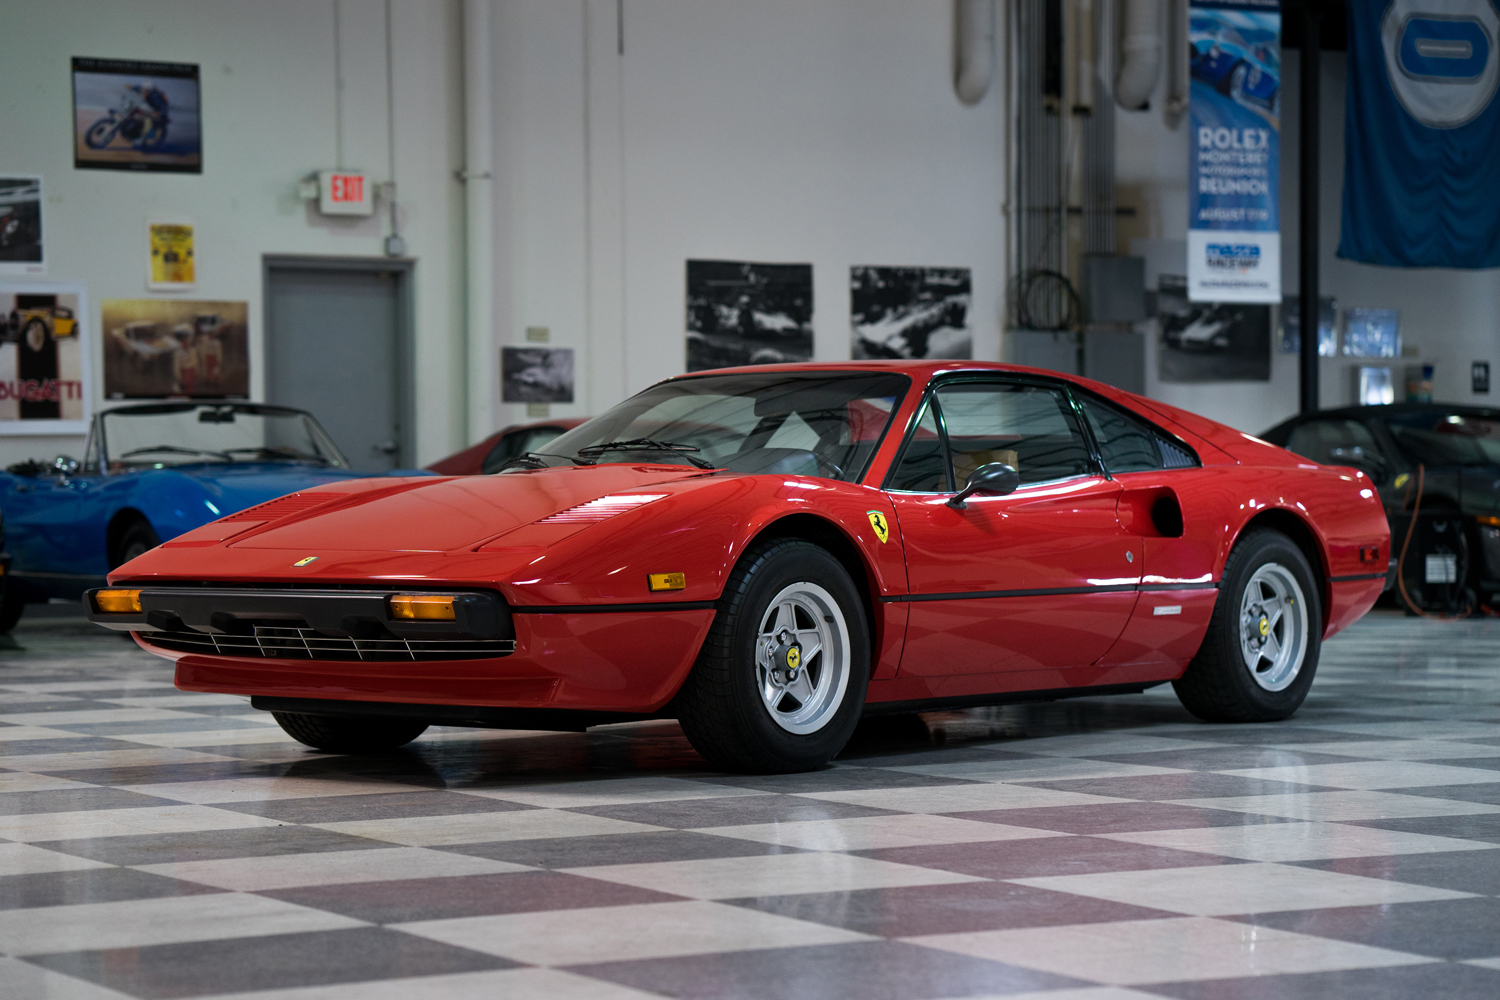 Riverside Museum Auctioning Off Supercars Classics Indy - Supercar classics